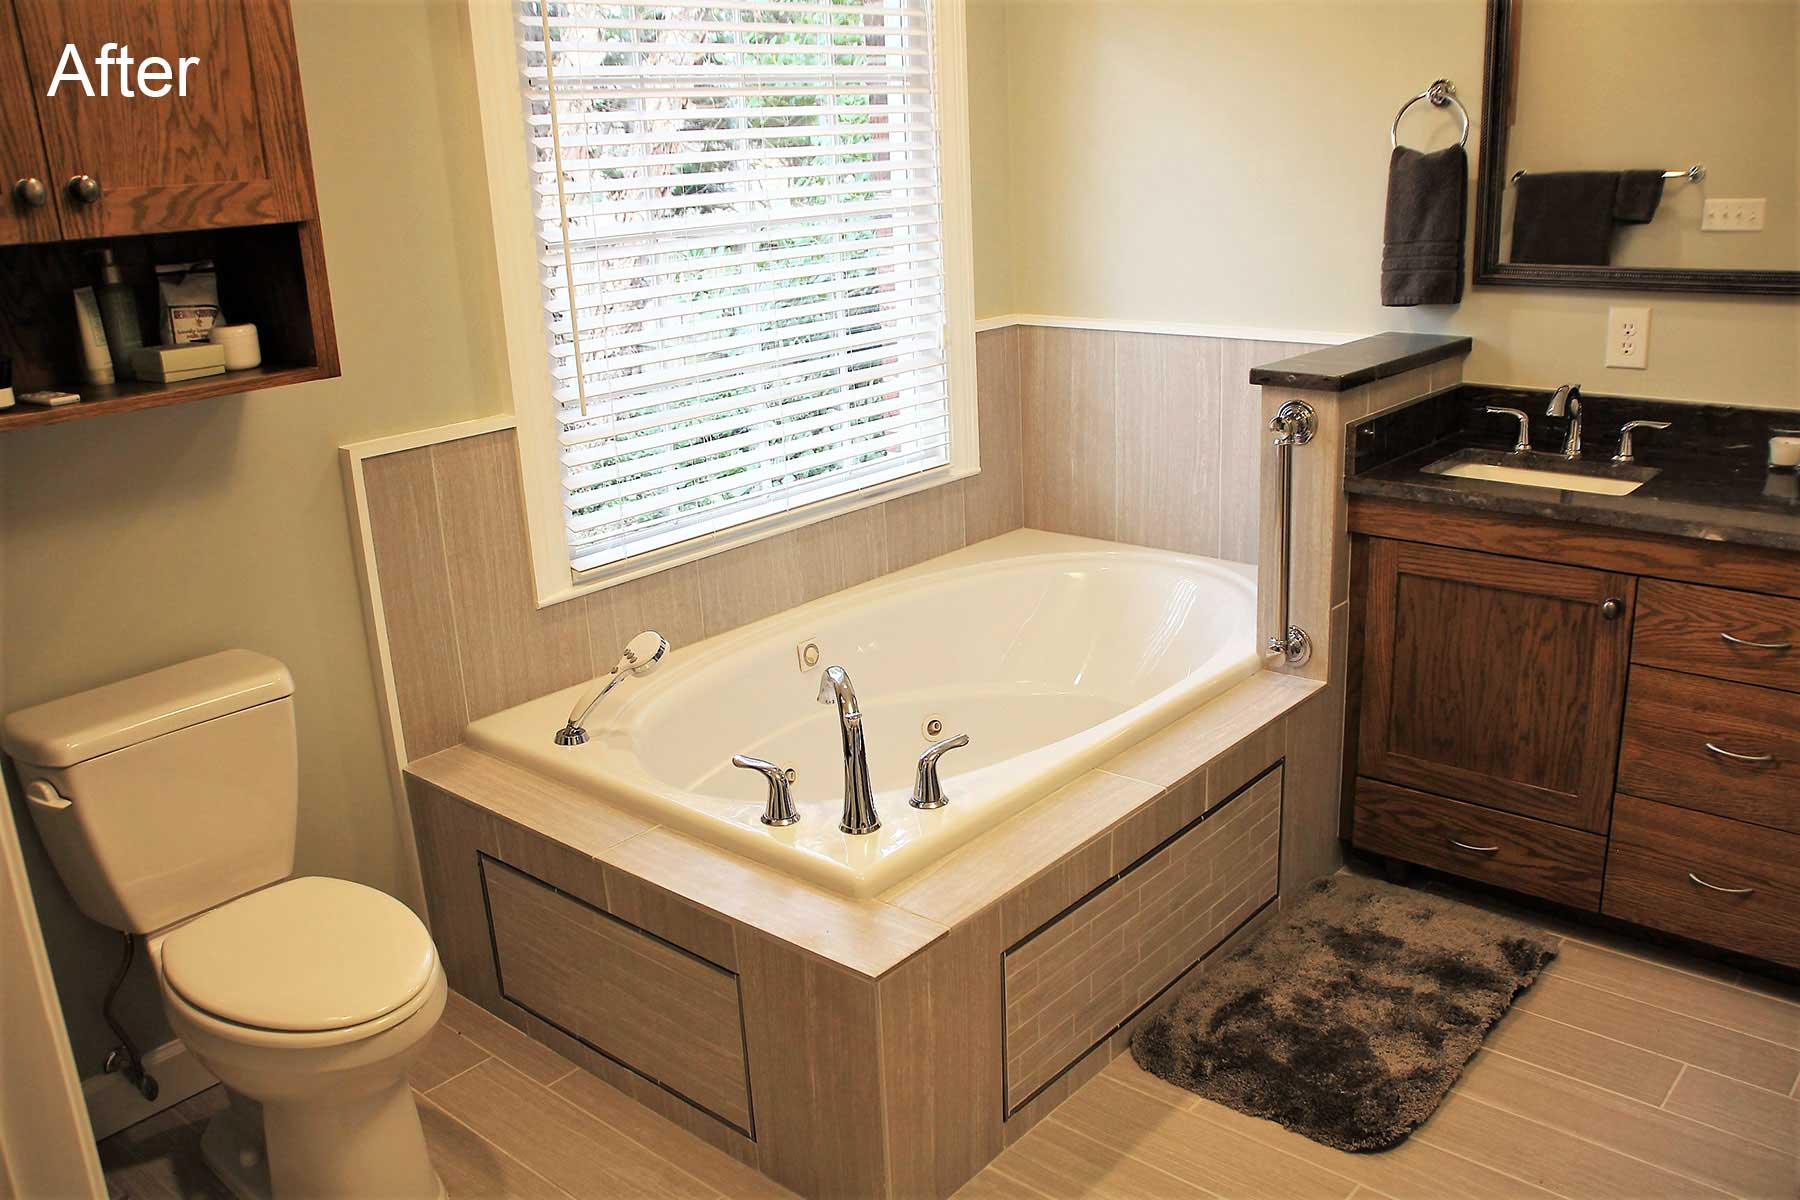 Freestanding tub after remodel includes natural tile and safety grab bar